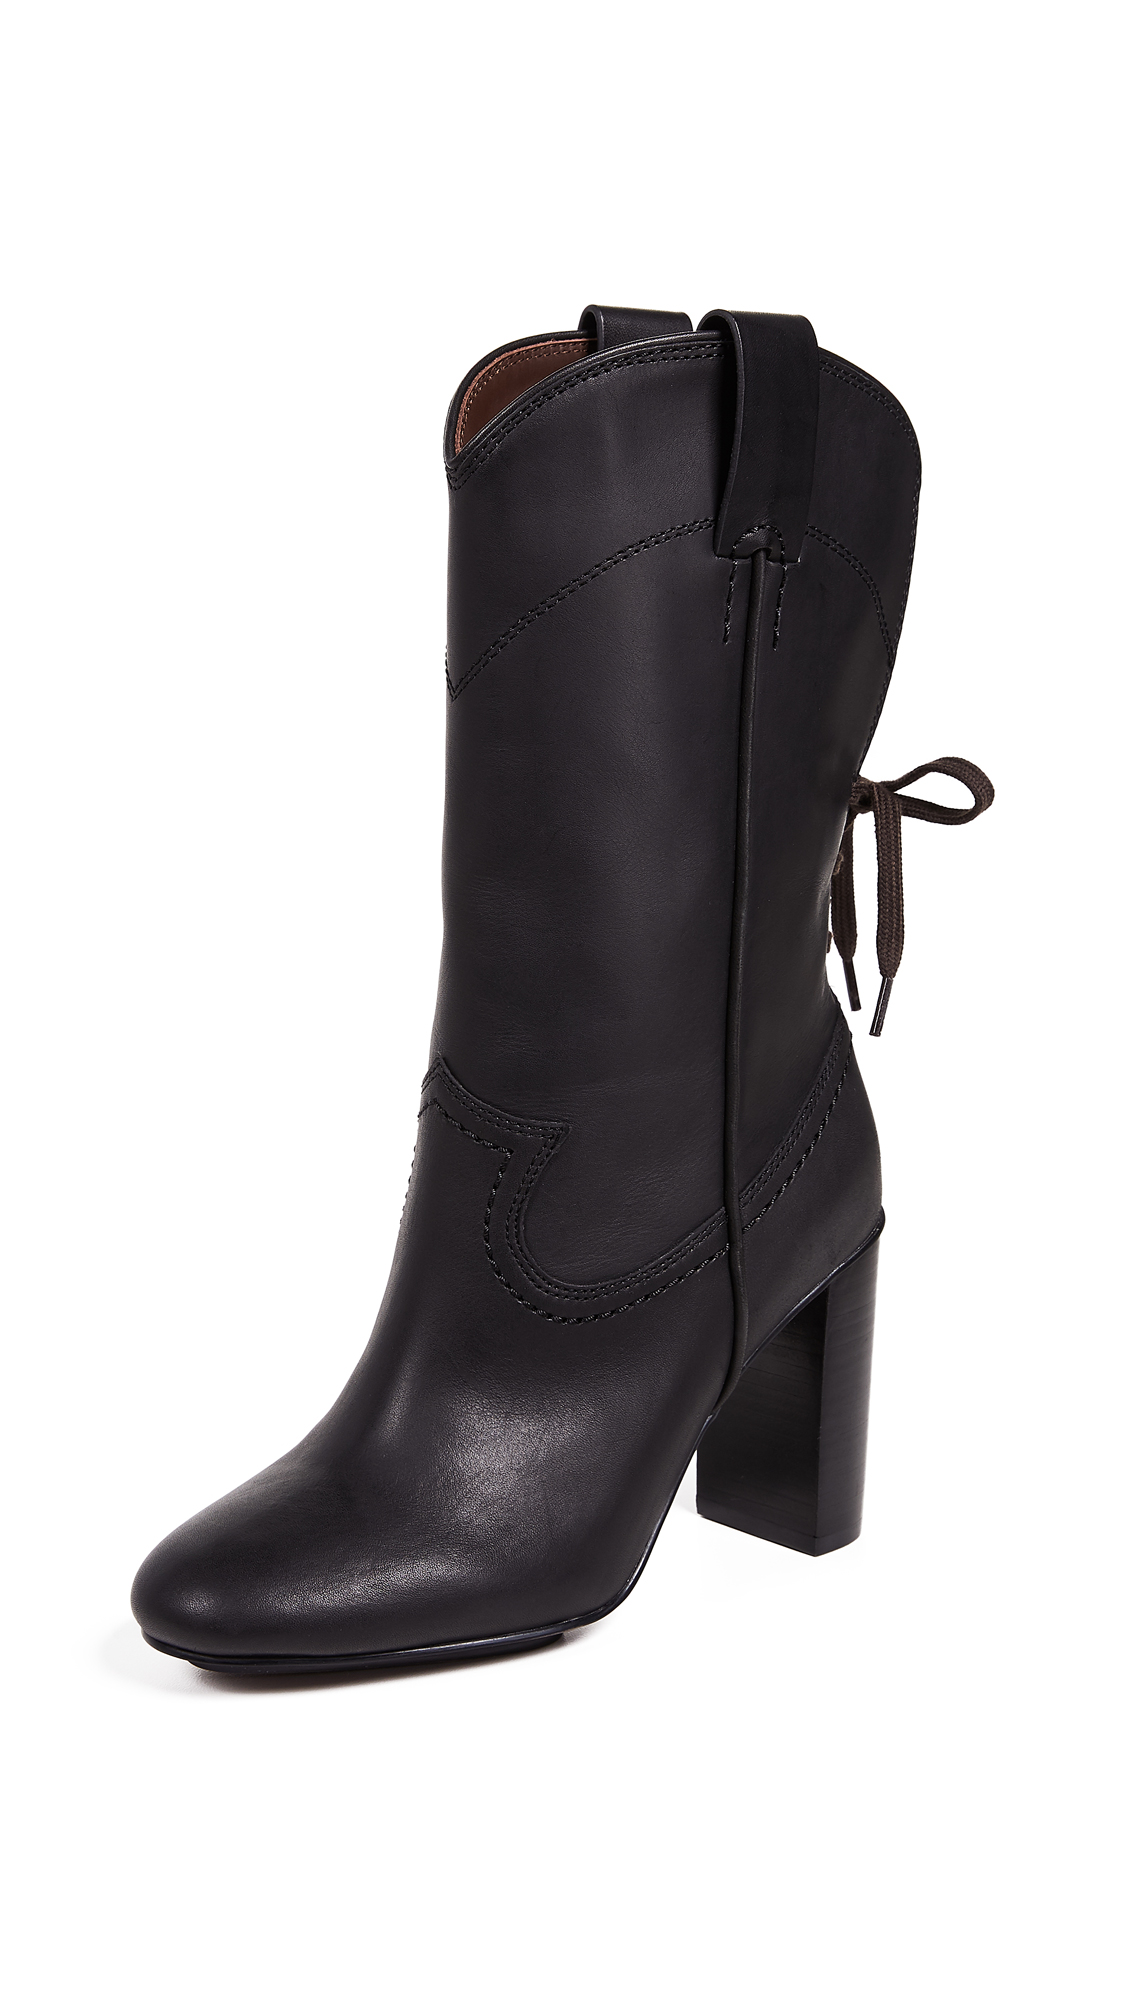 See by Chloe Annika High Heel Western Boots - Black